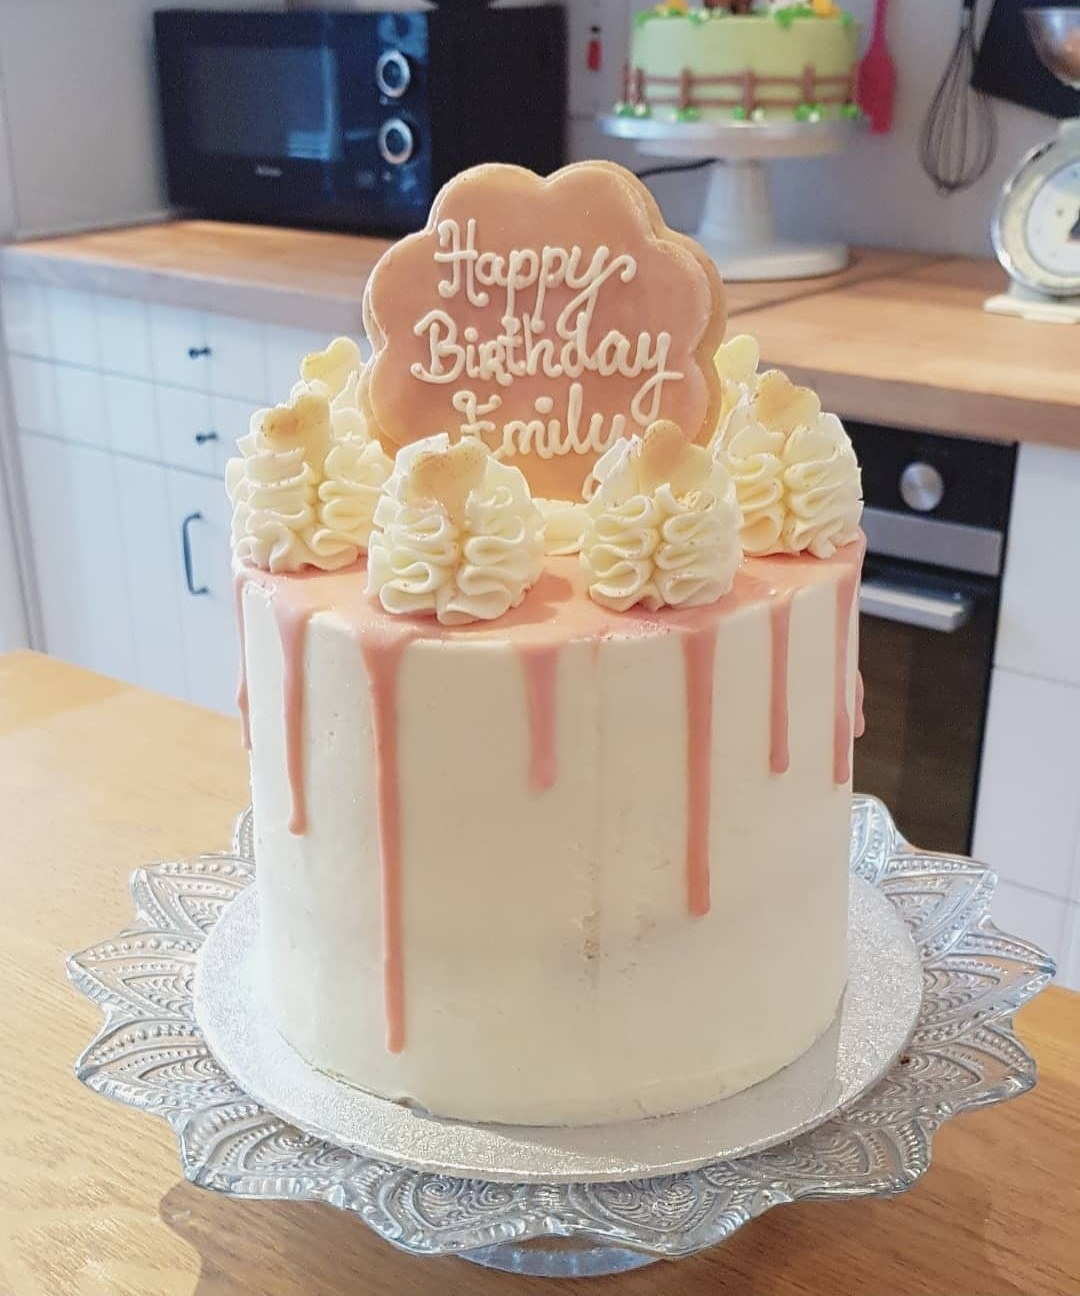 30th Birthday Cake Ideas Allow It To Be Fun And Lightweight Finlayson Cafe